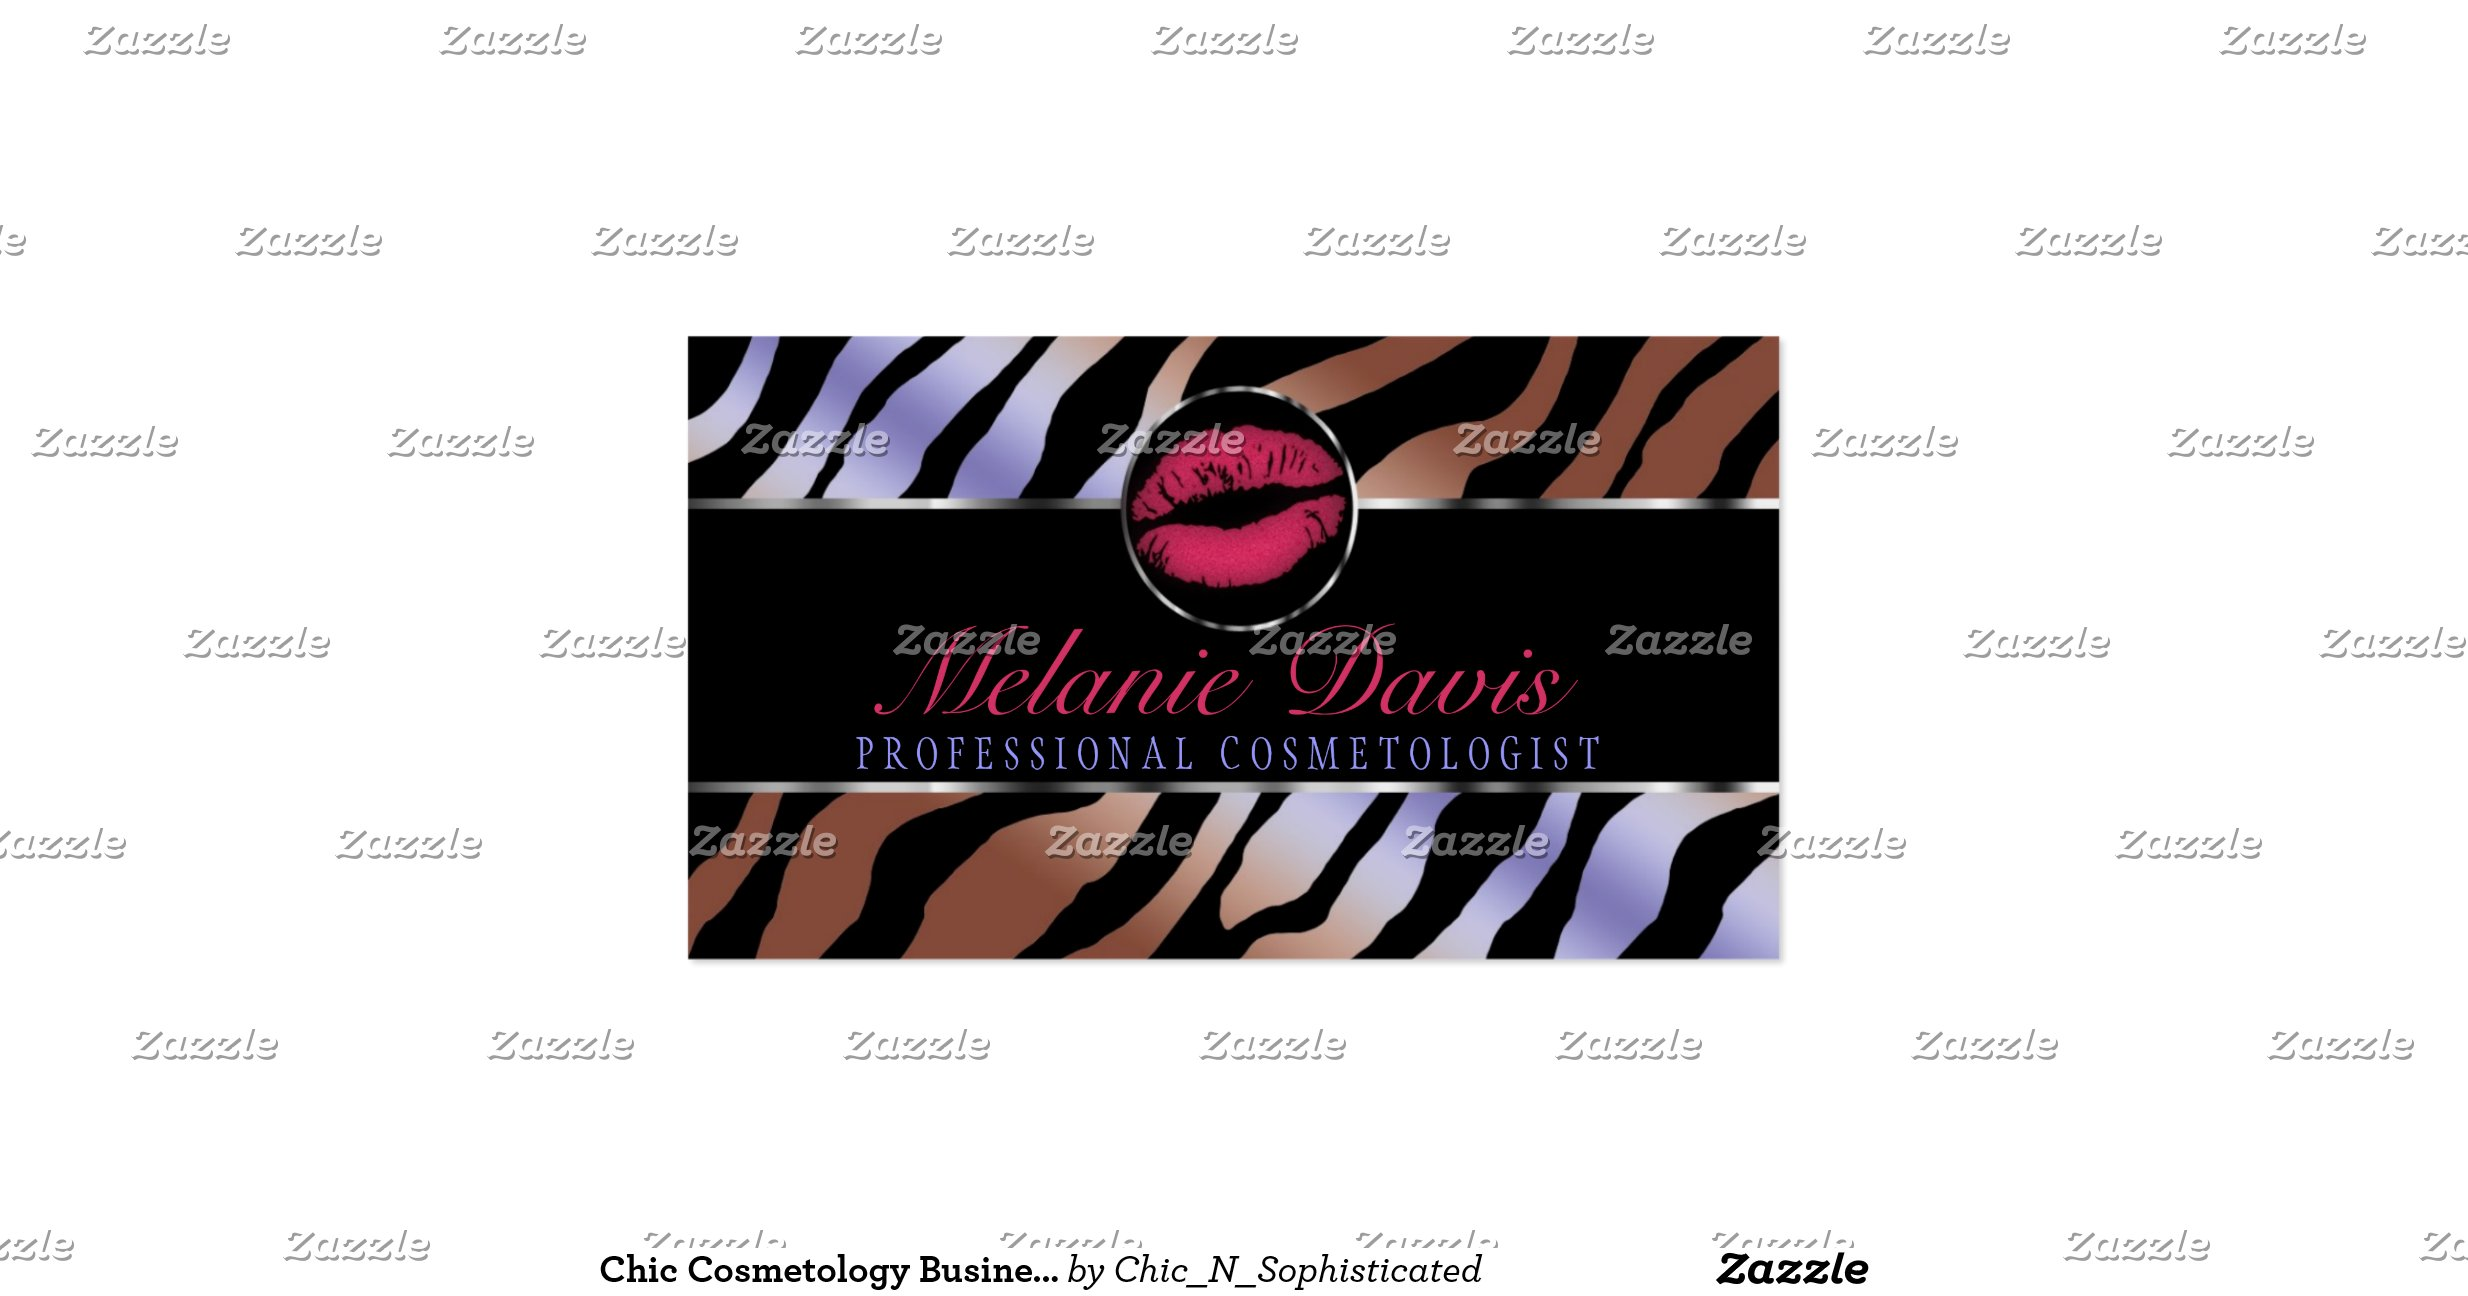 Fresh Photos Of Tanning Salon Business Cards - Business Cards and ...